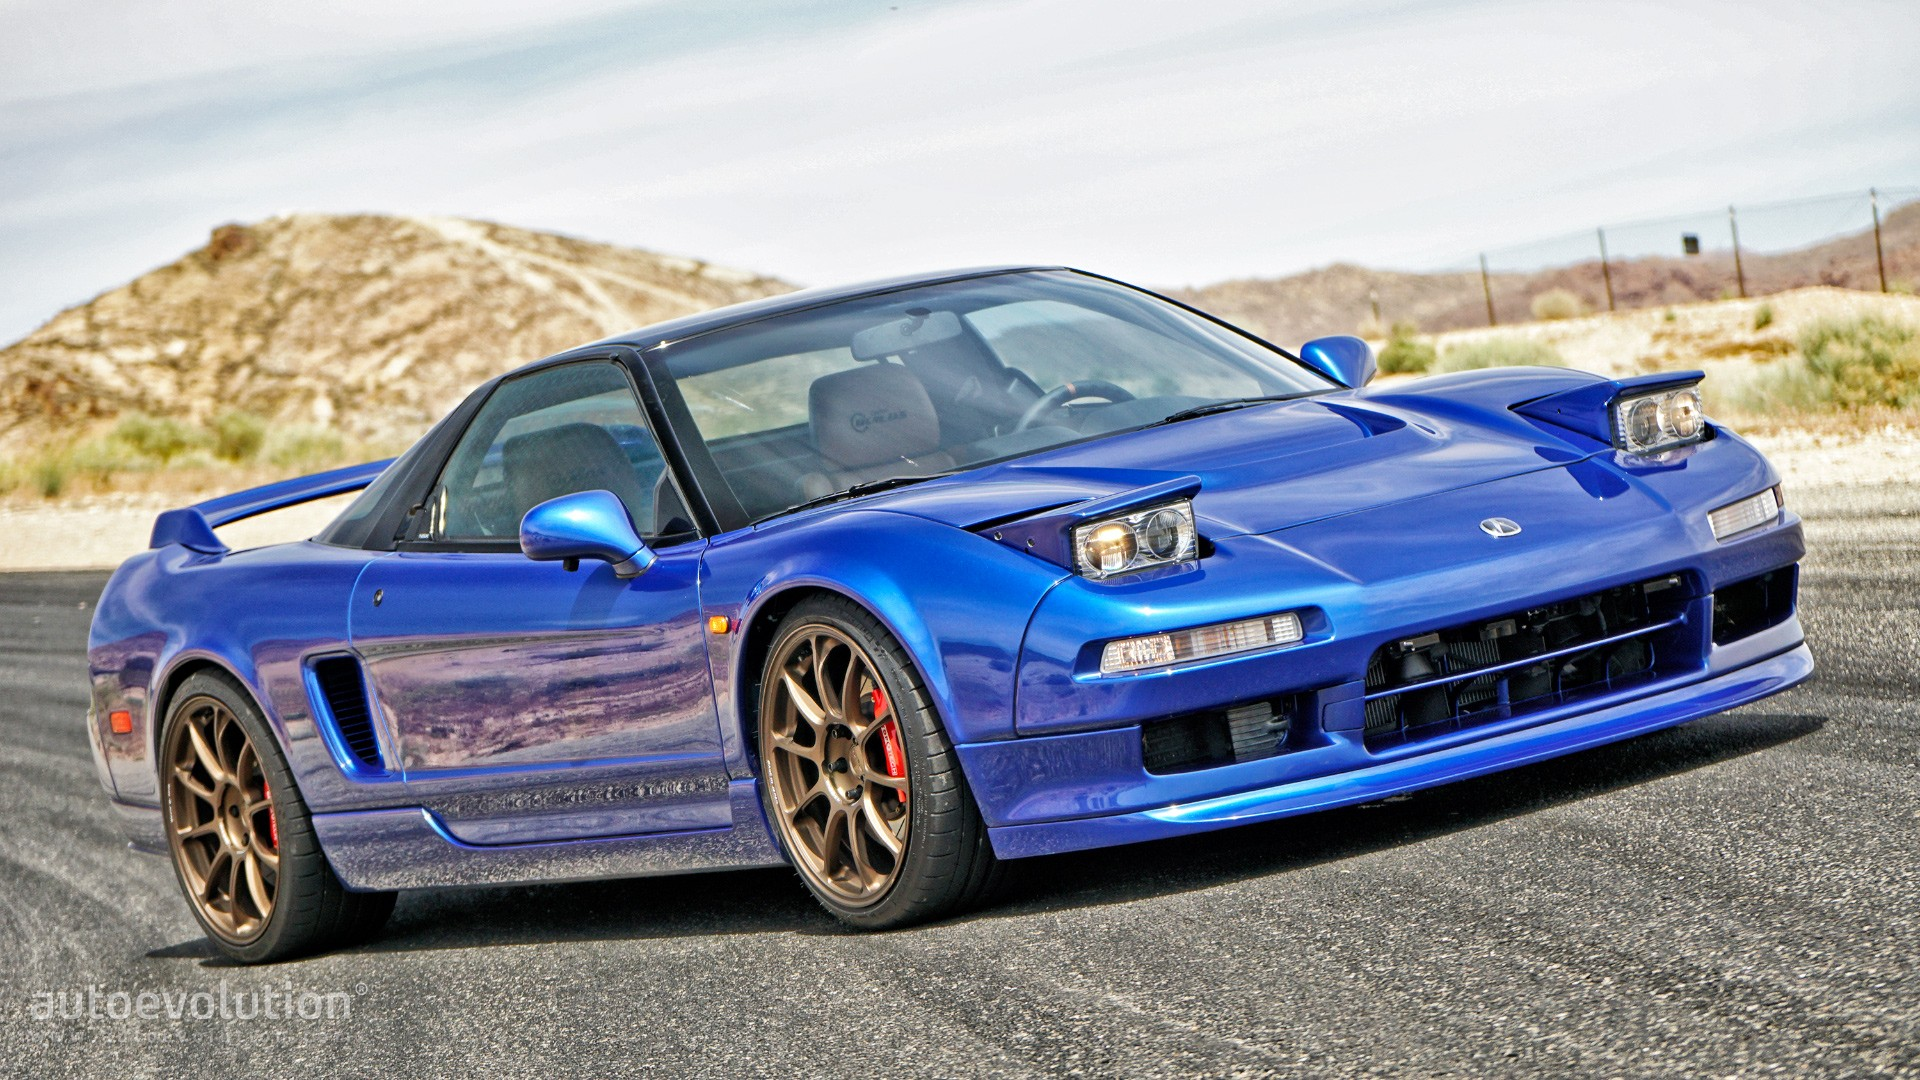 clarion builds resurrects and improves a 1991 acura nsx_13 clarion's newest dashboard marvel is a knockout autoevolution